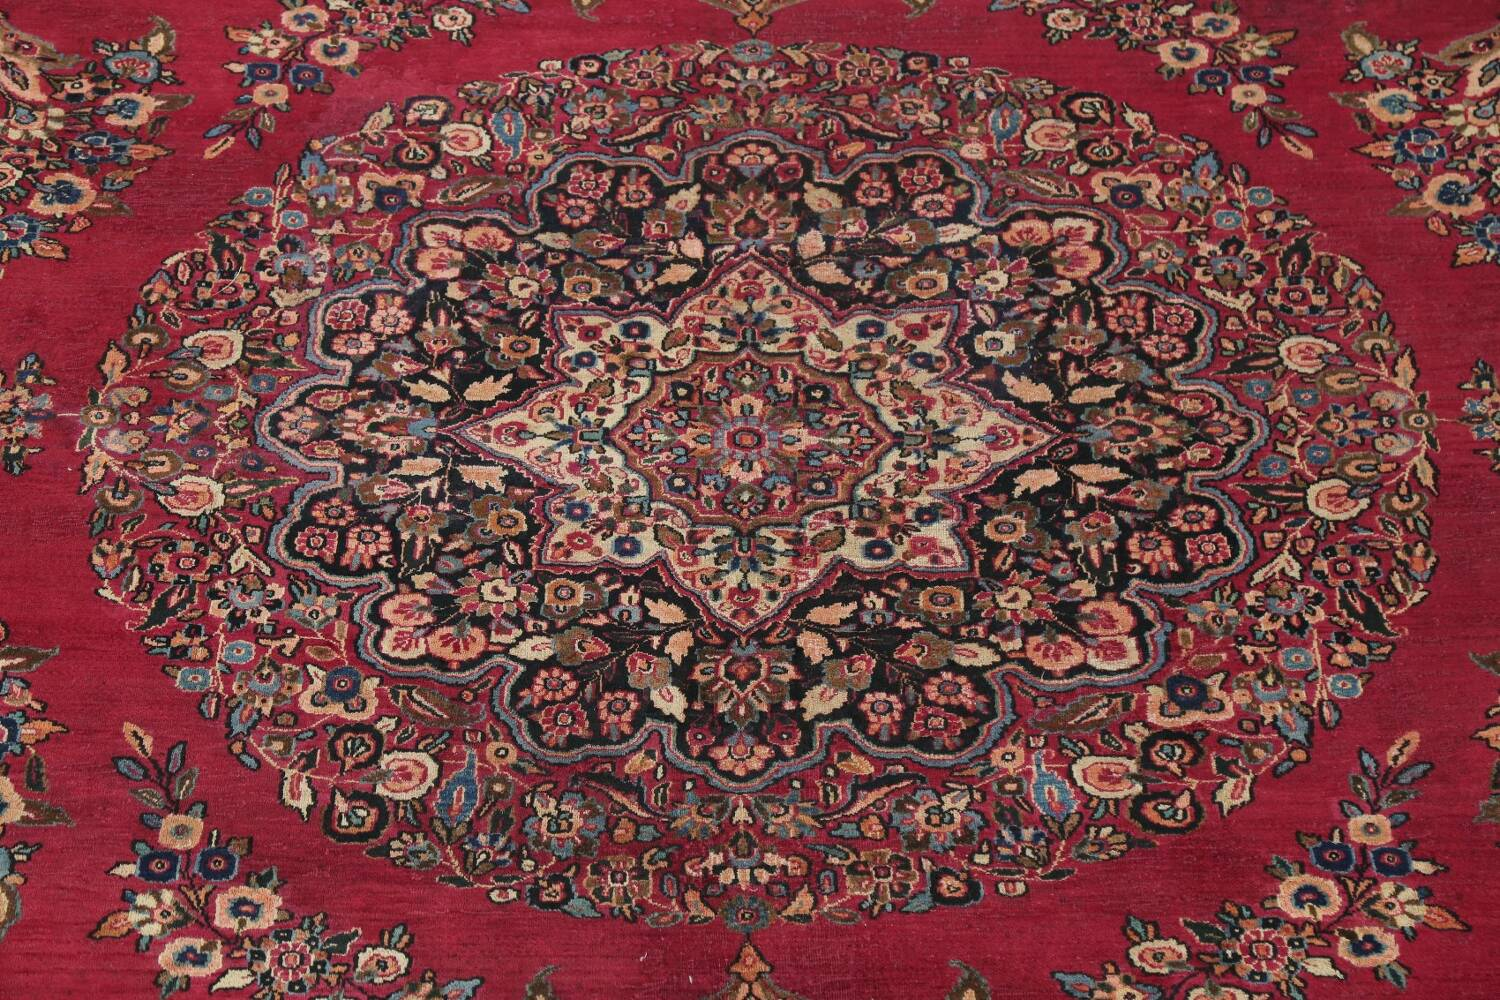 Antique Floral Red Dorokhsh Persian Rug Large 11x14 image 4